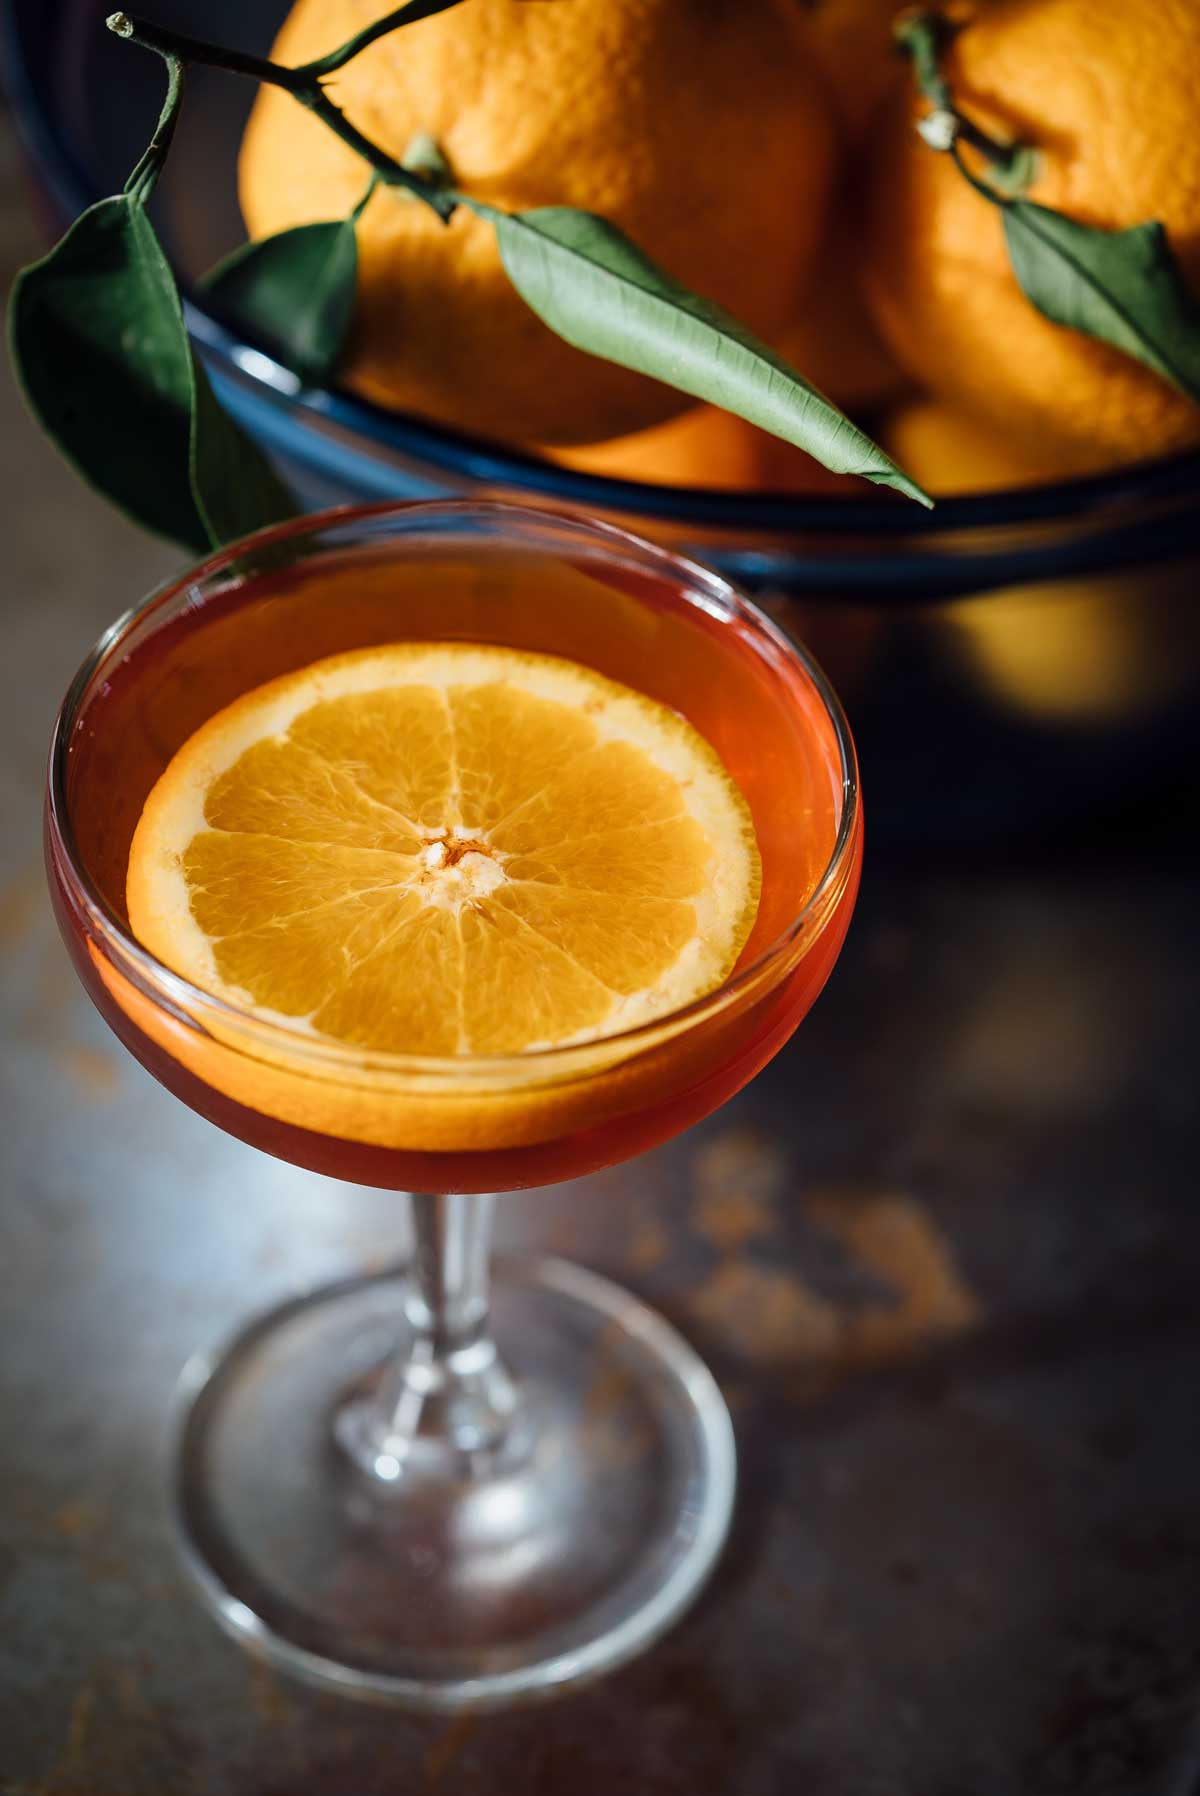 Sparkling Orange Cocktail Easter Cocktails Your Family and Friends Will Love